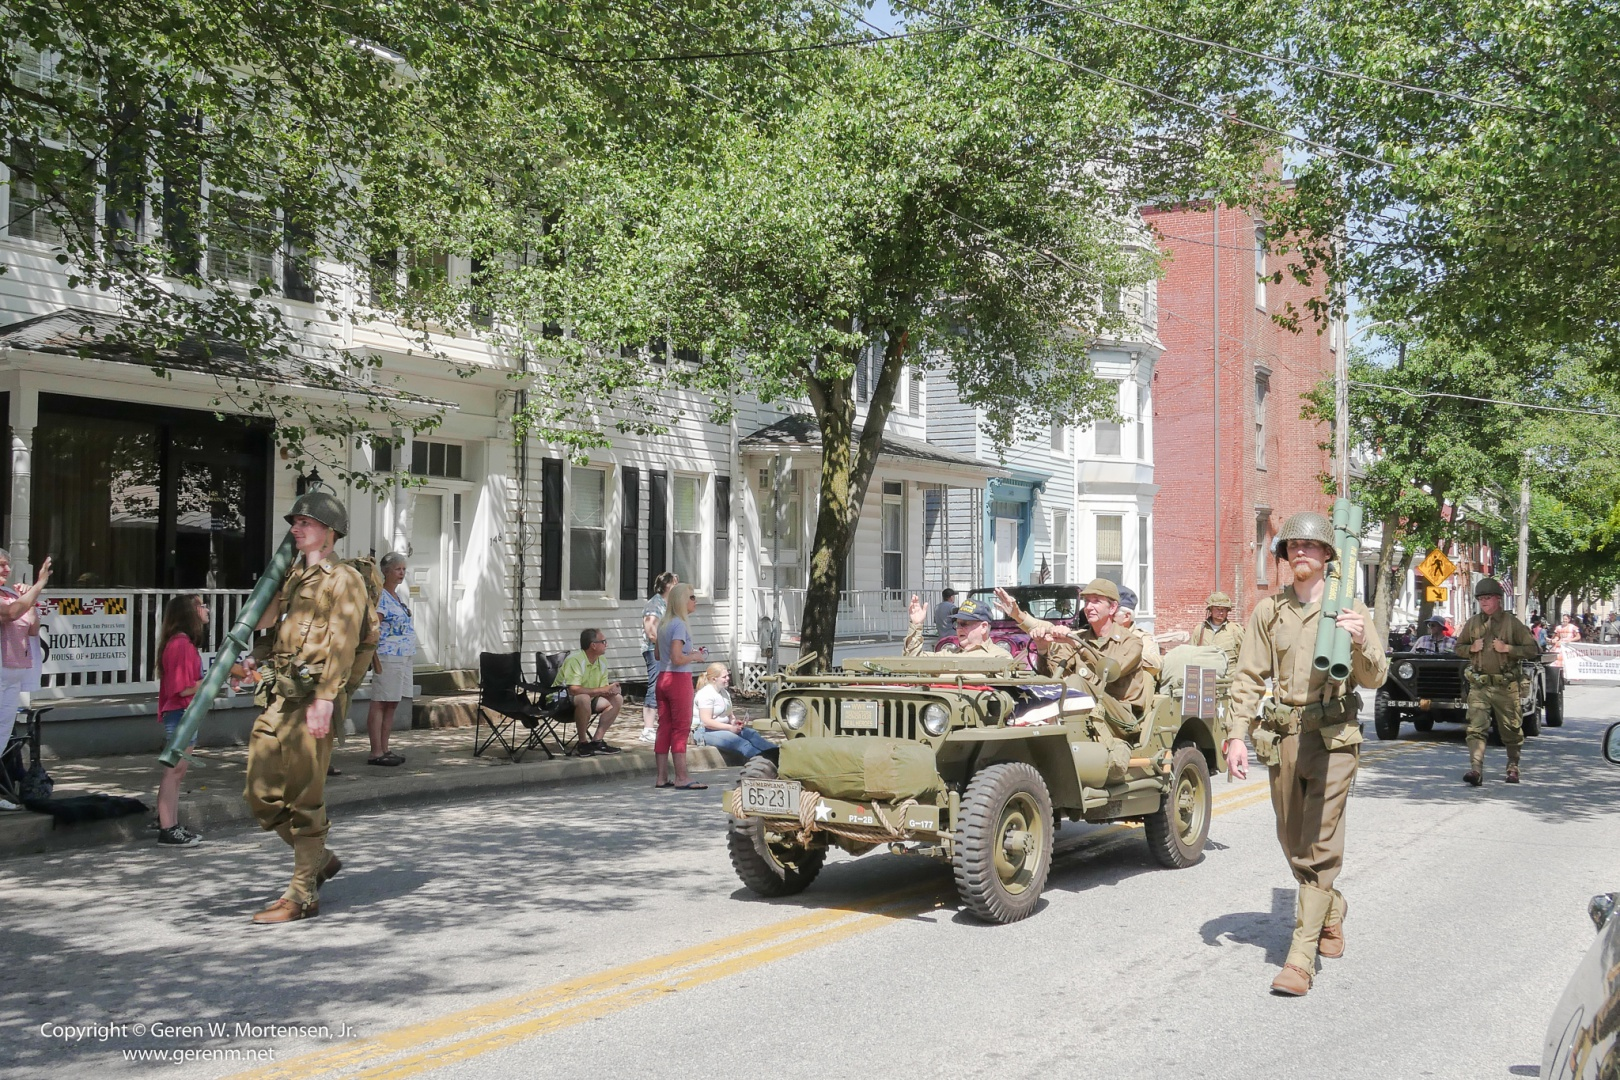 Memorial-Day-Parade_May-26-2014_02_PANA.jpg